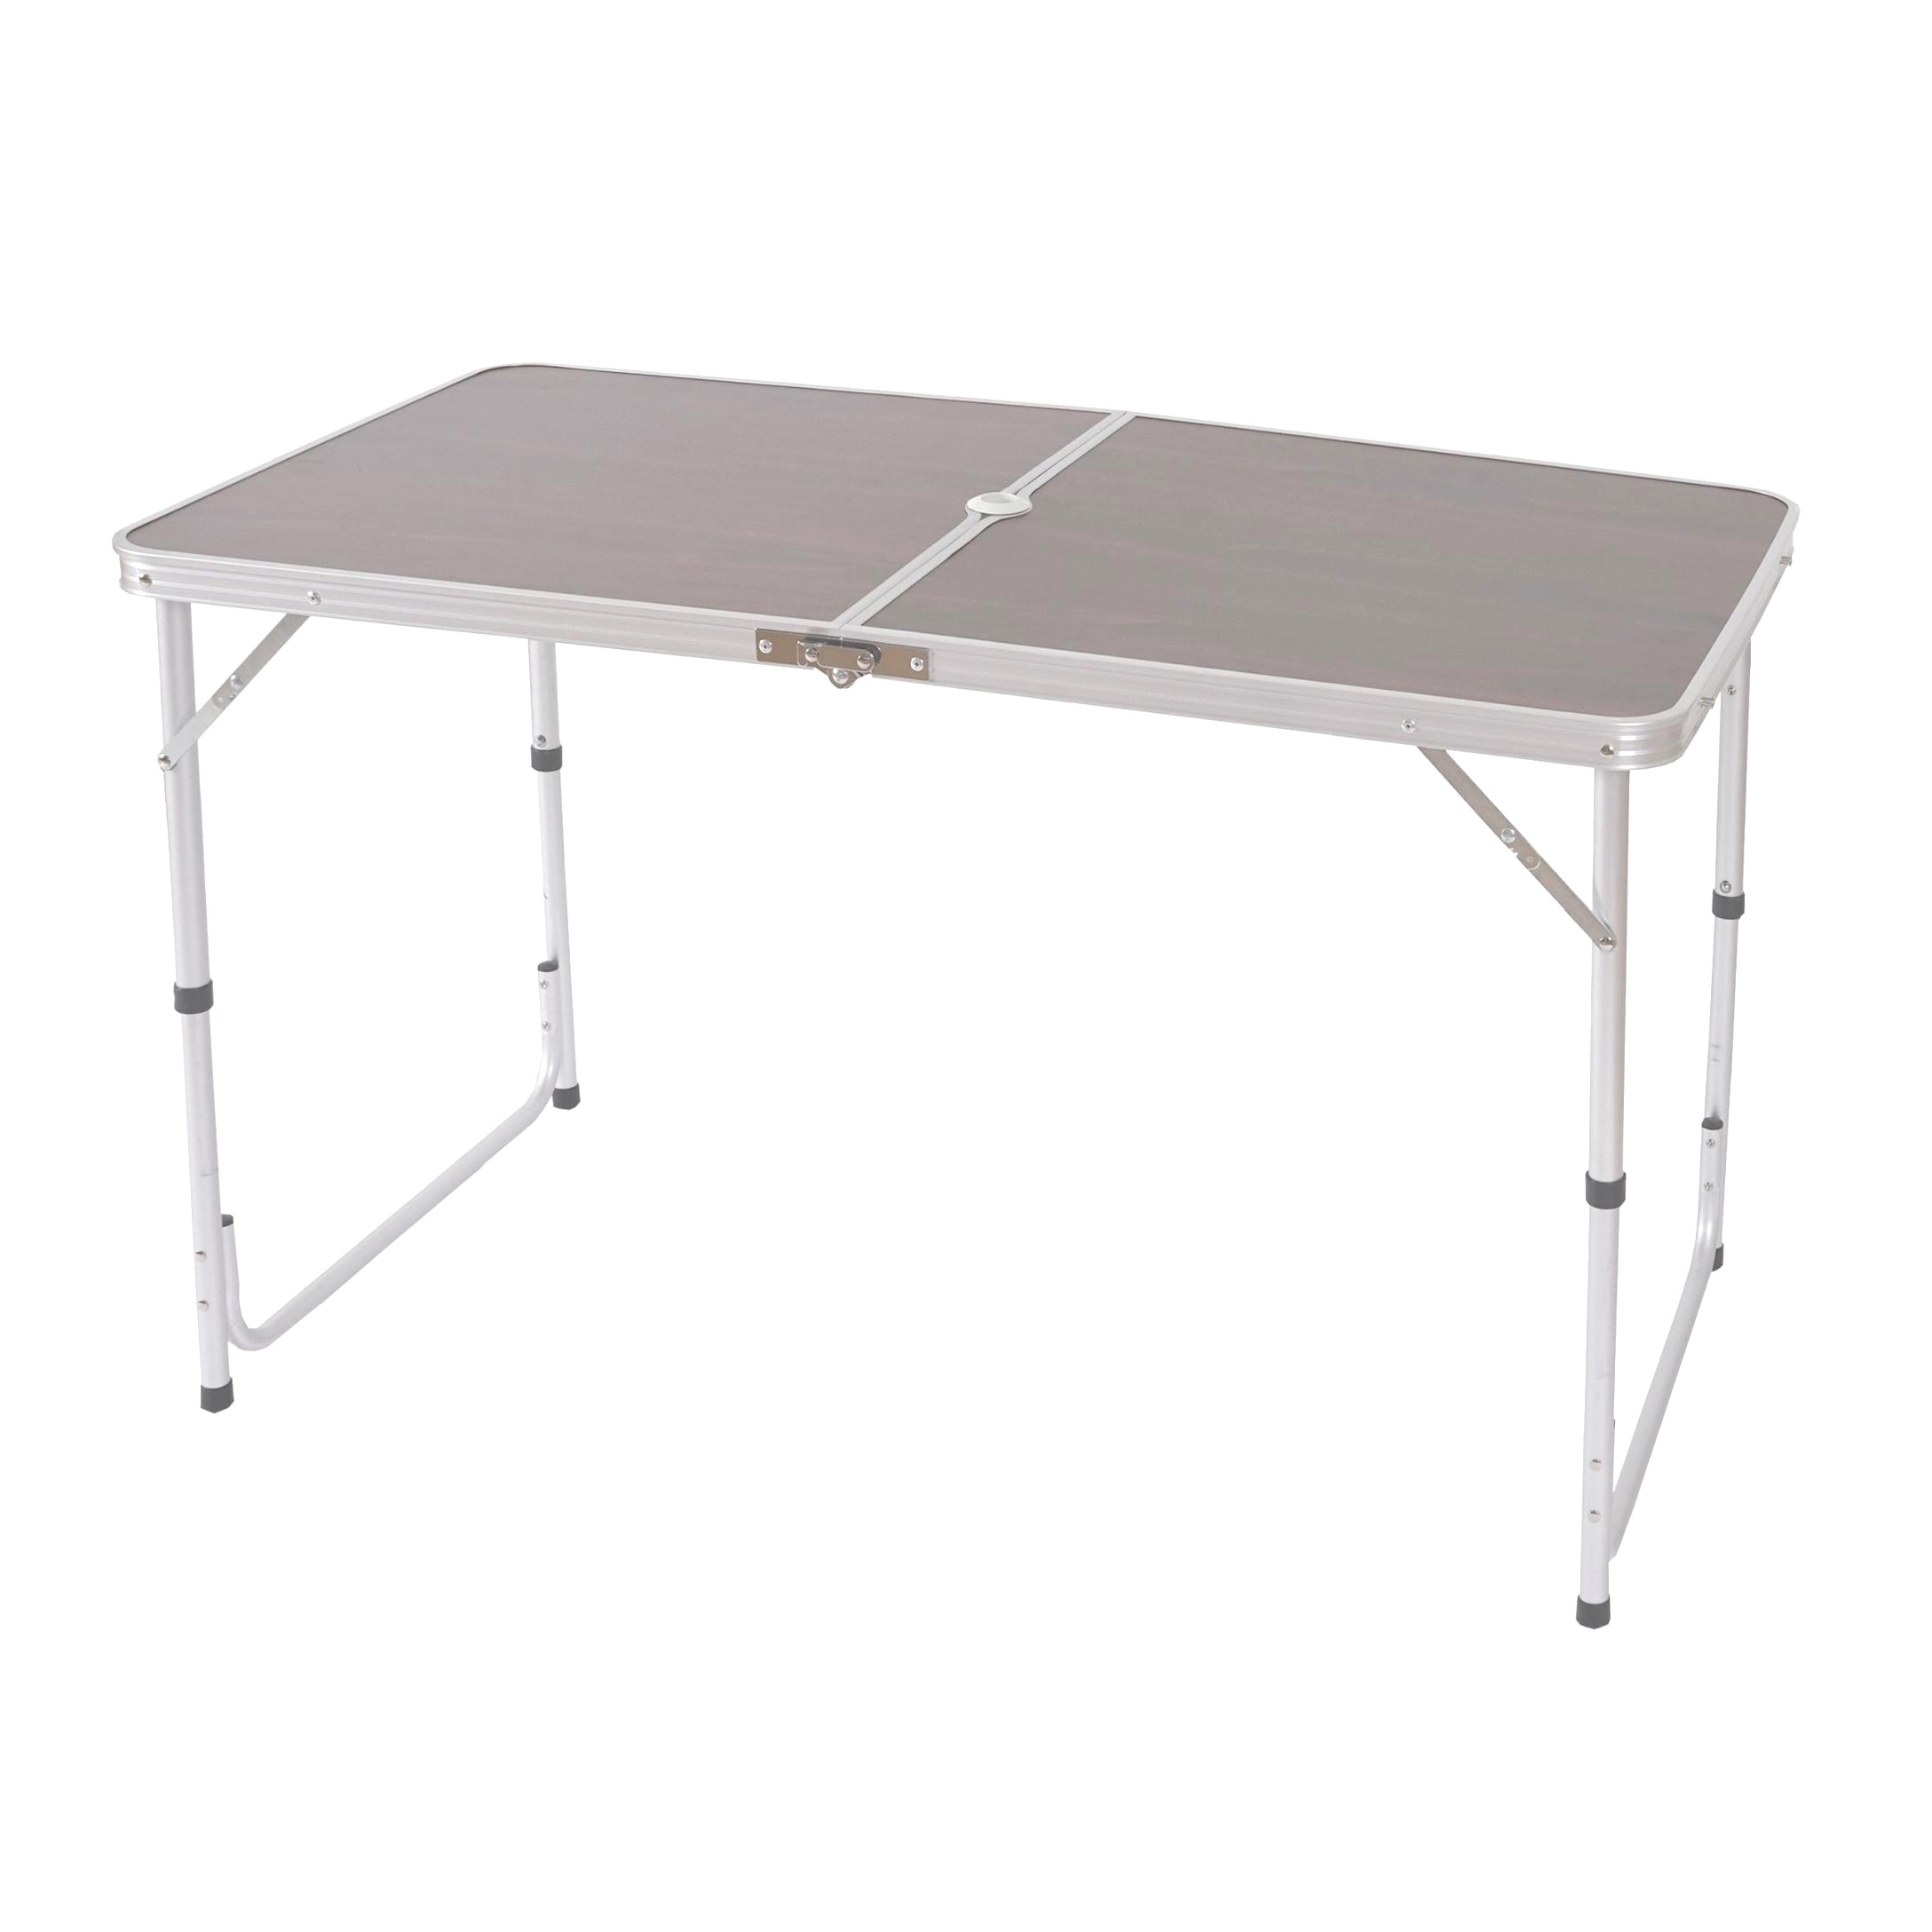 Salon Jardin Leroy Merlin Resine Beau Photos Banc Pliable Leroy Merlin Nouveau Table Pliante Valise Leroy Merlin